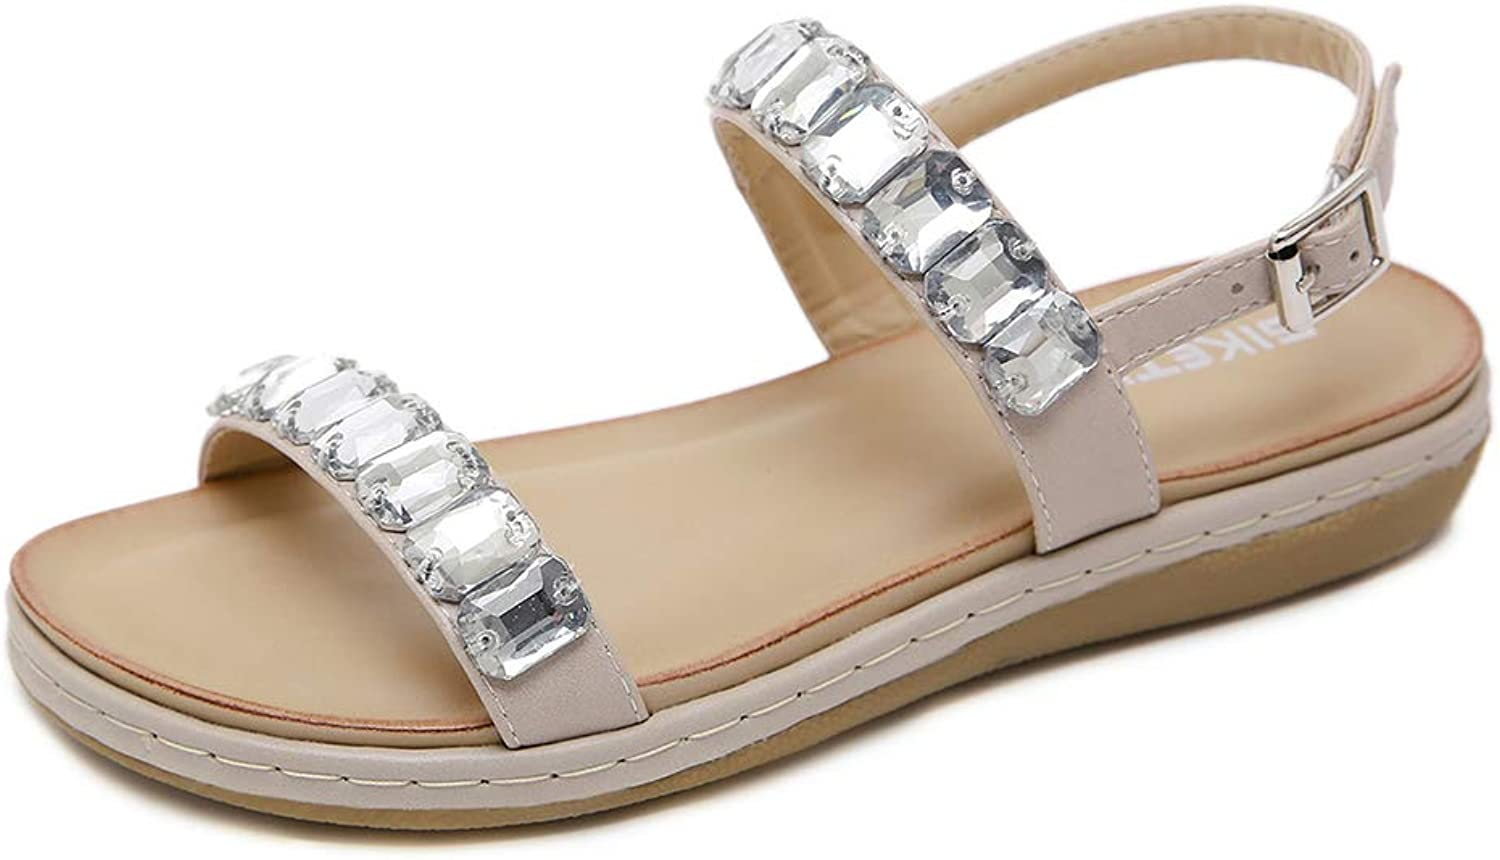 Tuoup Womens Leather Ankle Strap Outdoor Jeweled Fashion Sandals